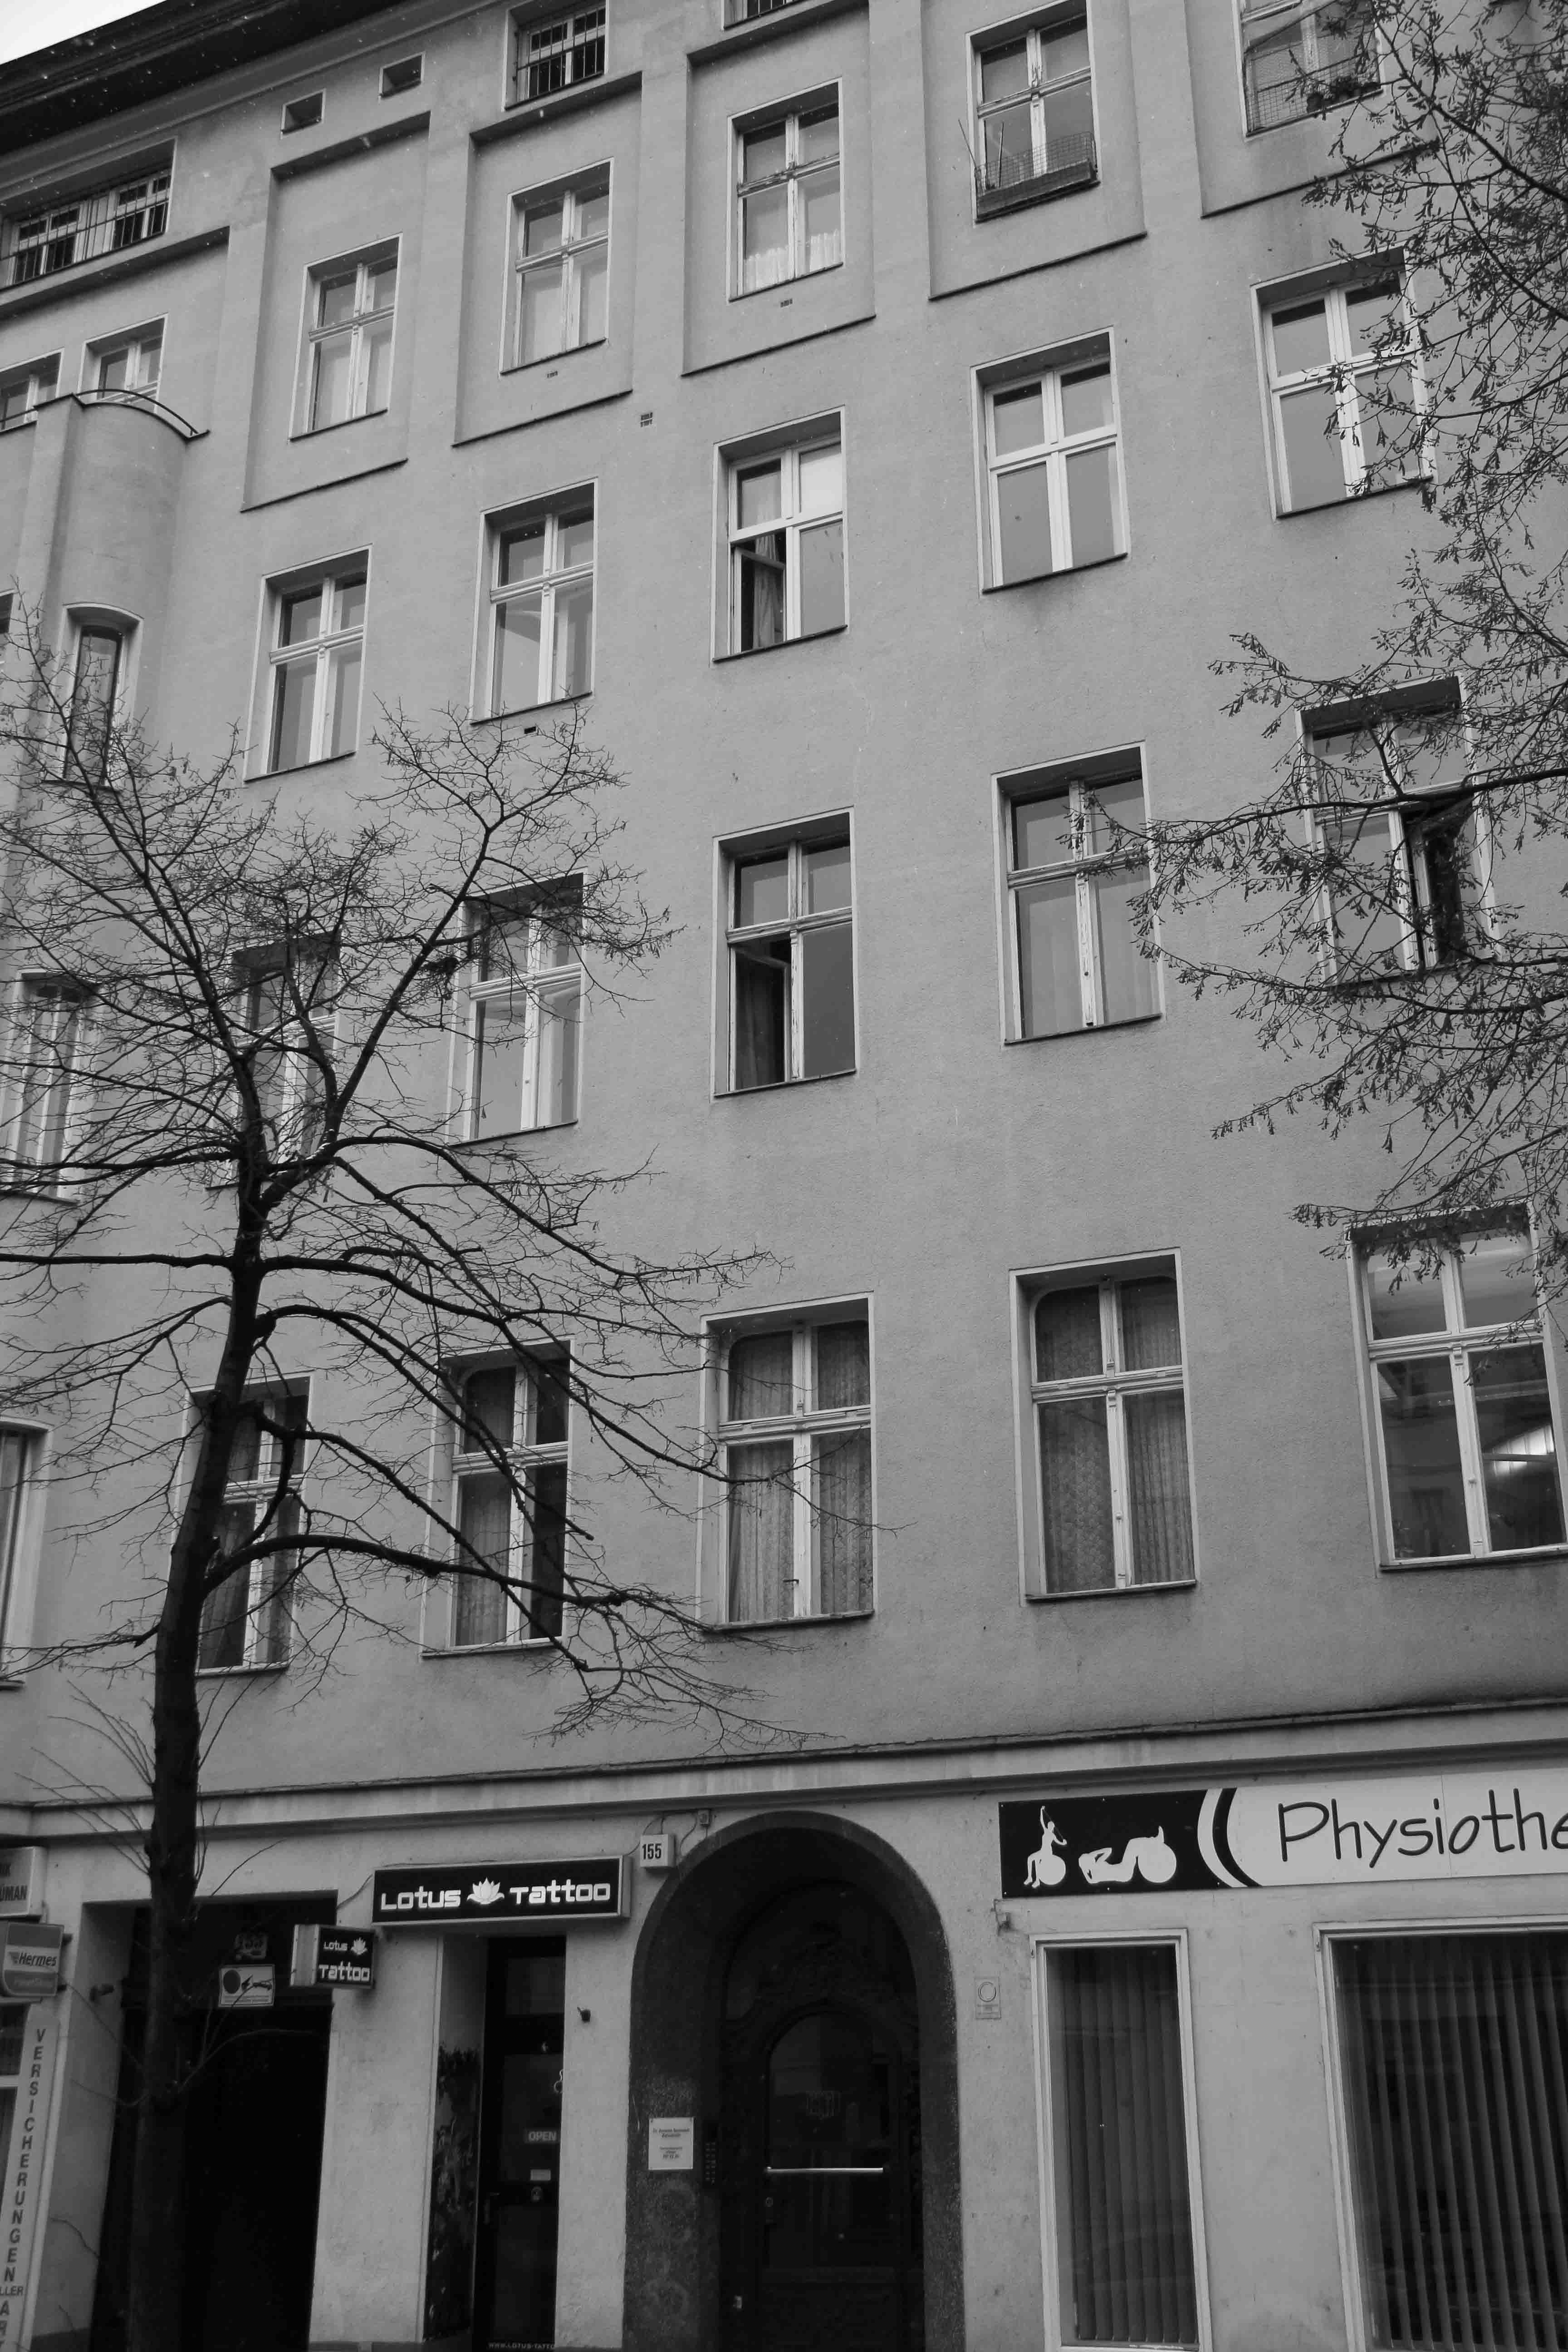 Flat Of David Bowie In Berlin When Moved To 1976 He